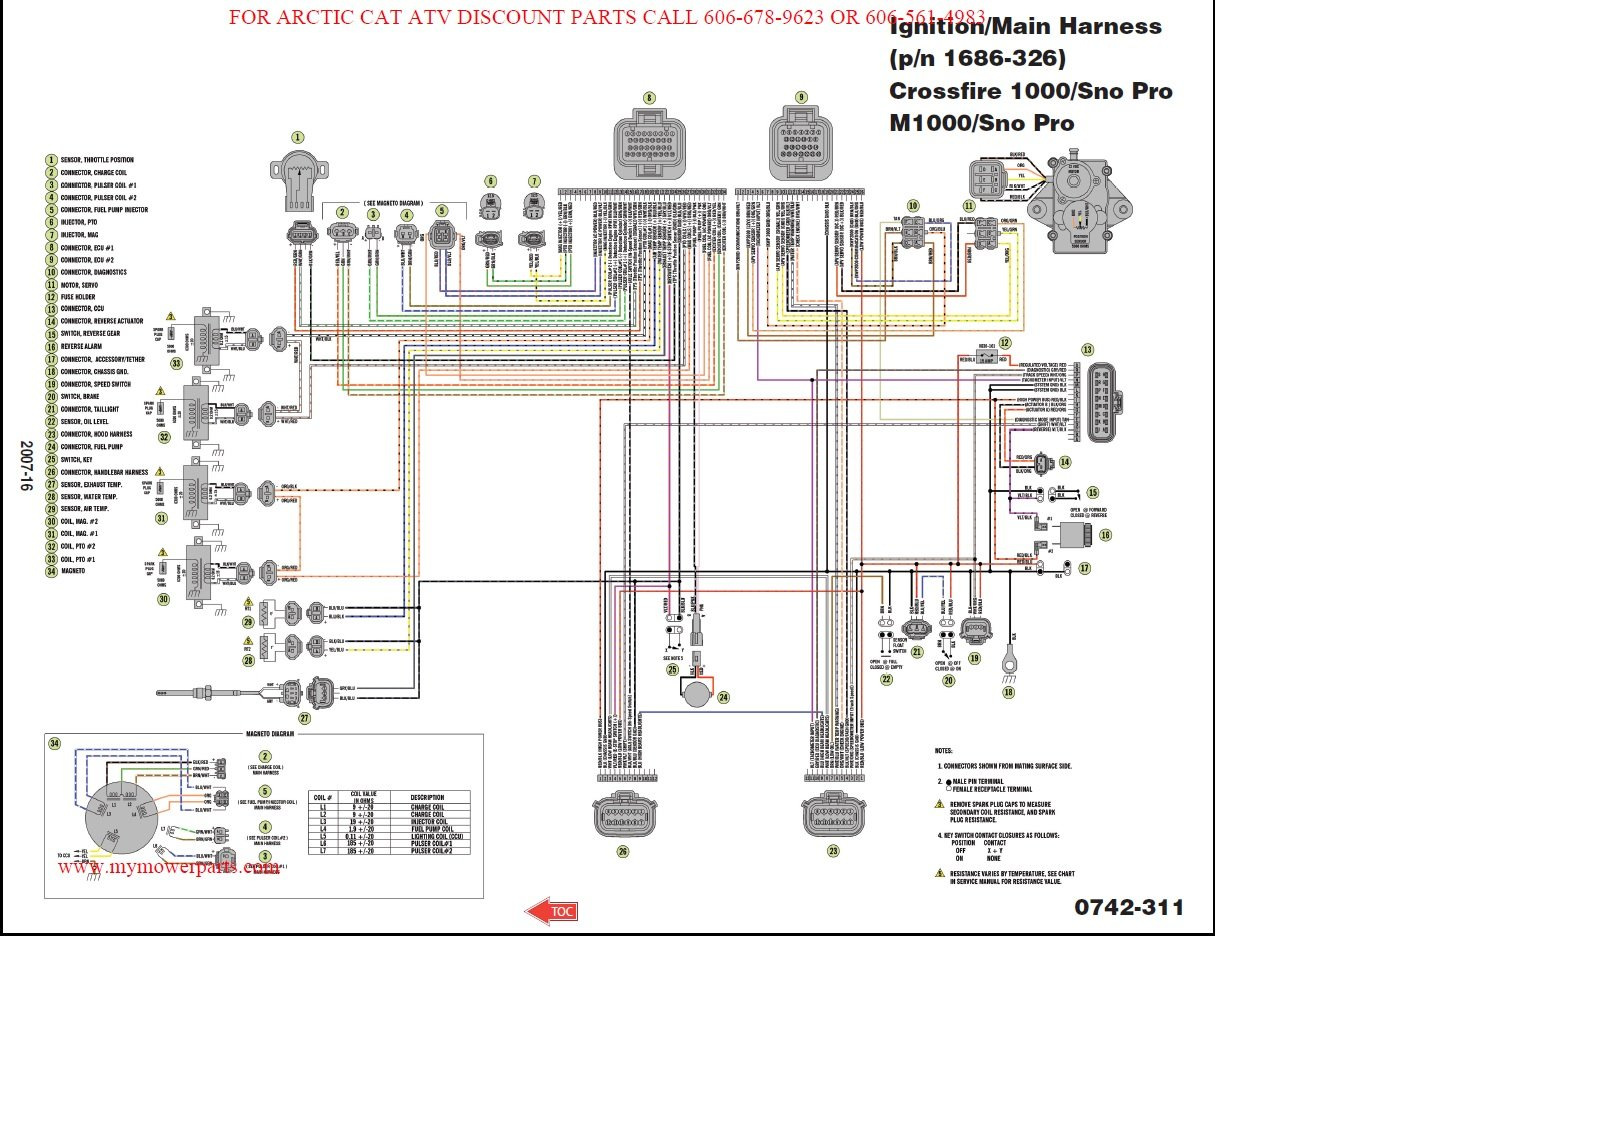 hight resolution of wrg 2077 arctic cat 250 wiring schematic arctic cat 500 wiring diagram arctic cat wiring